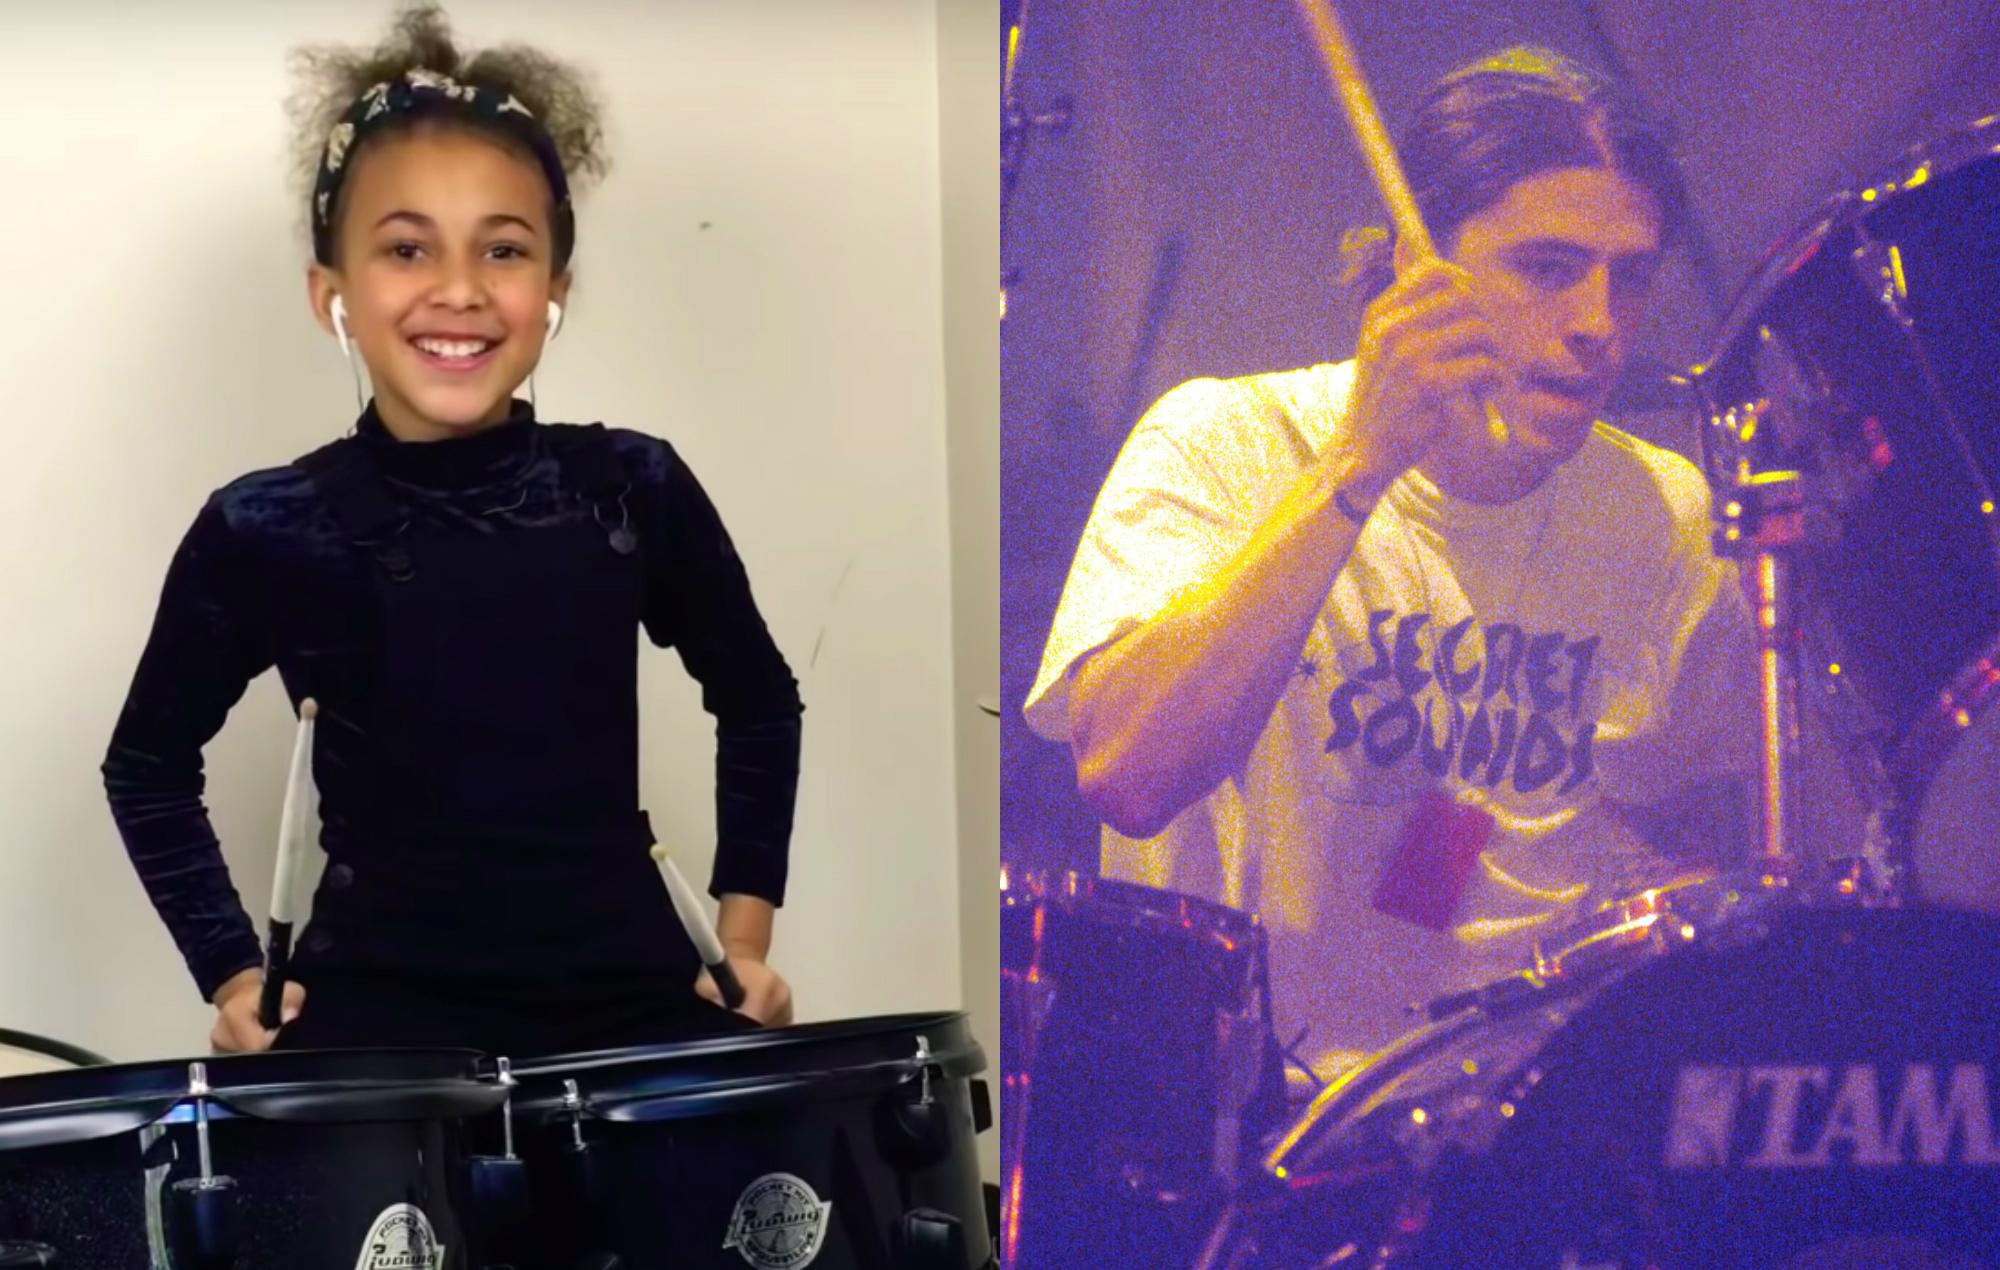 Nine-year-old's awesome drum cover of Nirvana's 'In Bloom' goes viral – watch